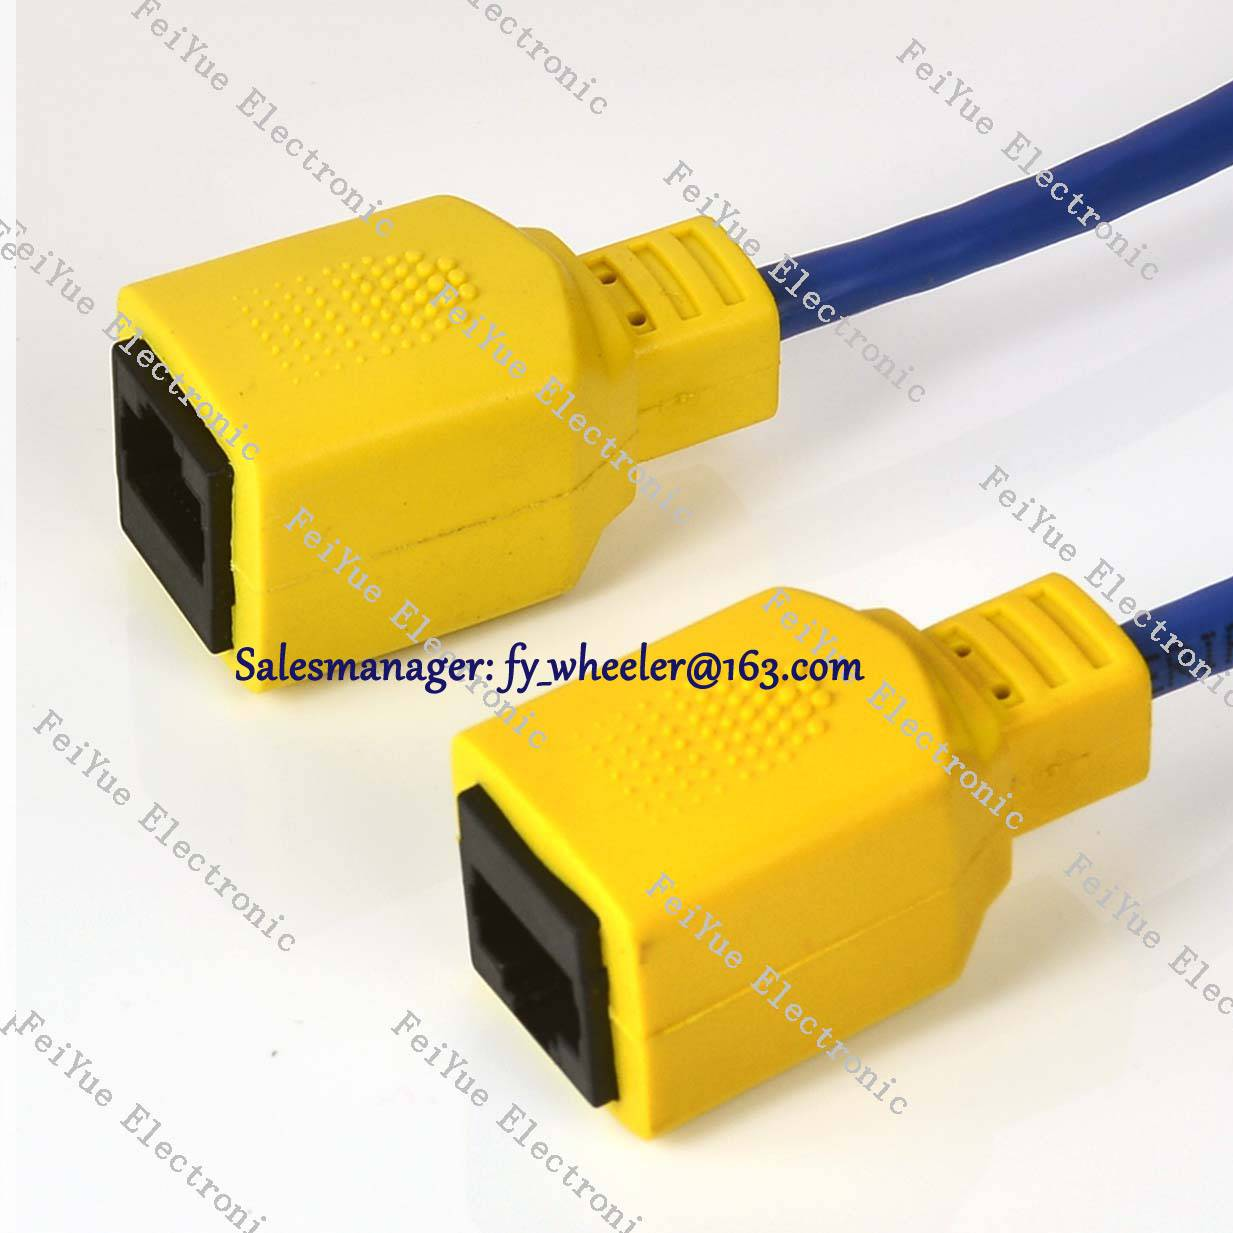 Unshield Network RJ45 extension cable Female to Female Cat6 UTP twisted Pair ethernet cable